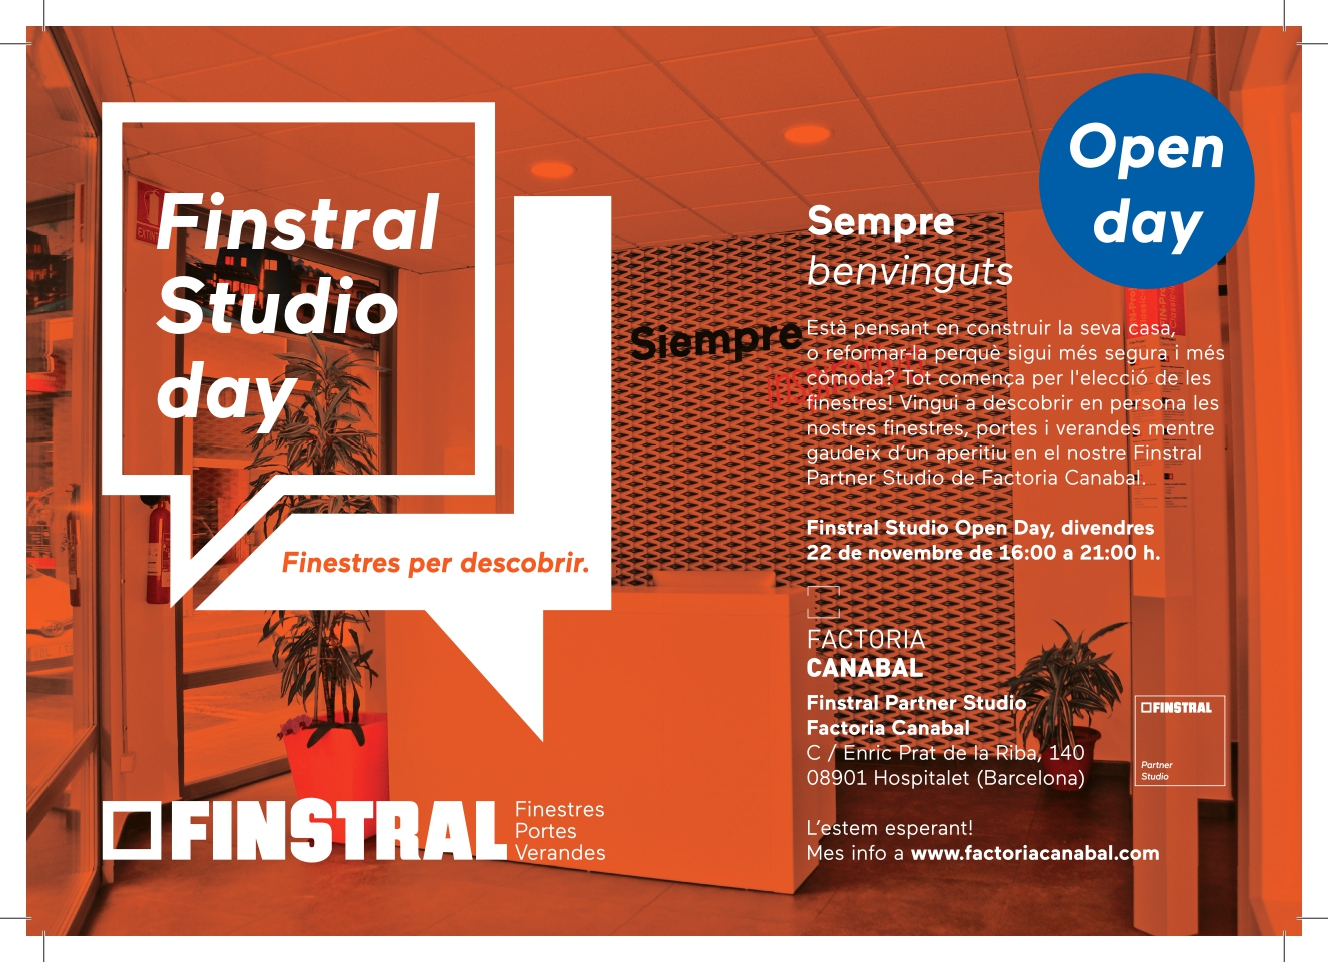 open day a Finstral partner Studio factoria Canabal